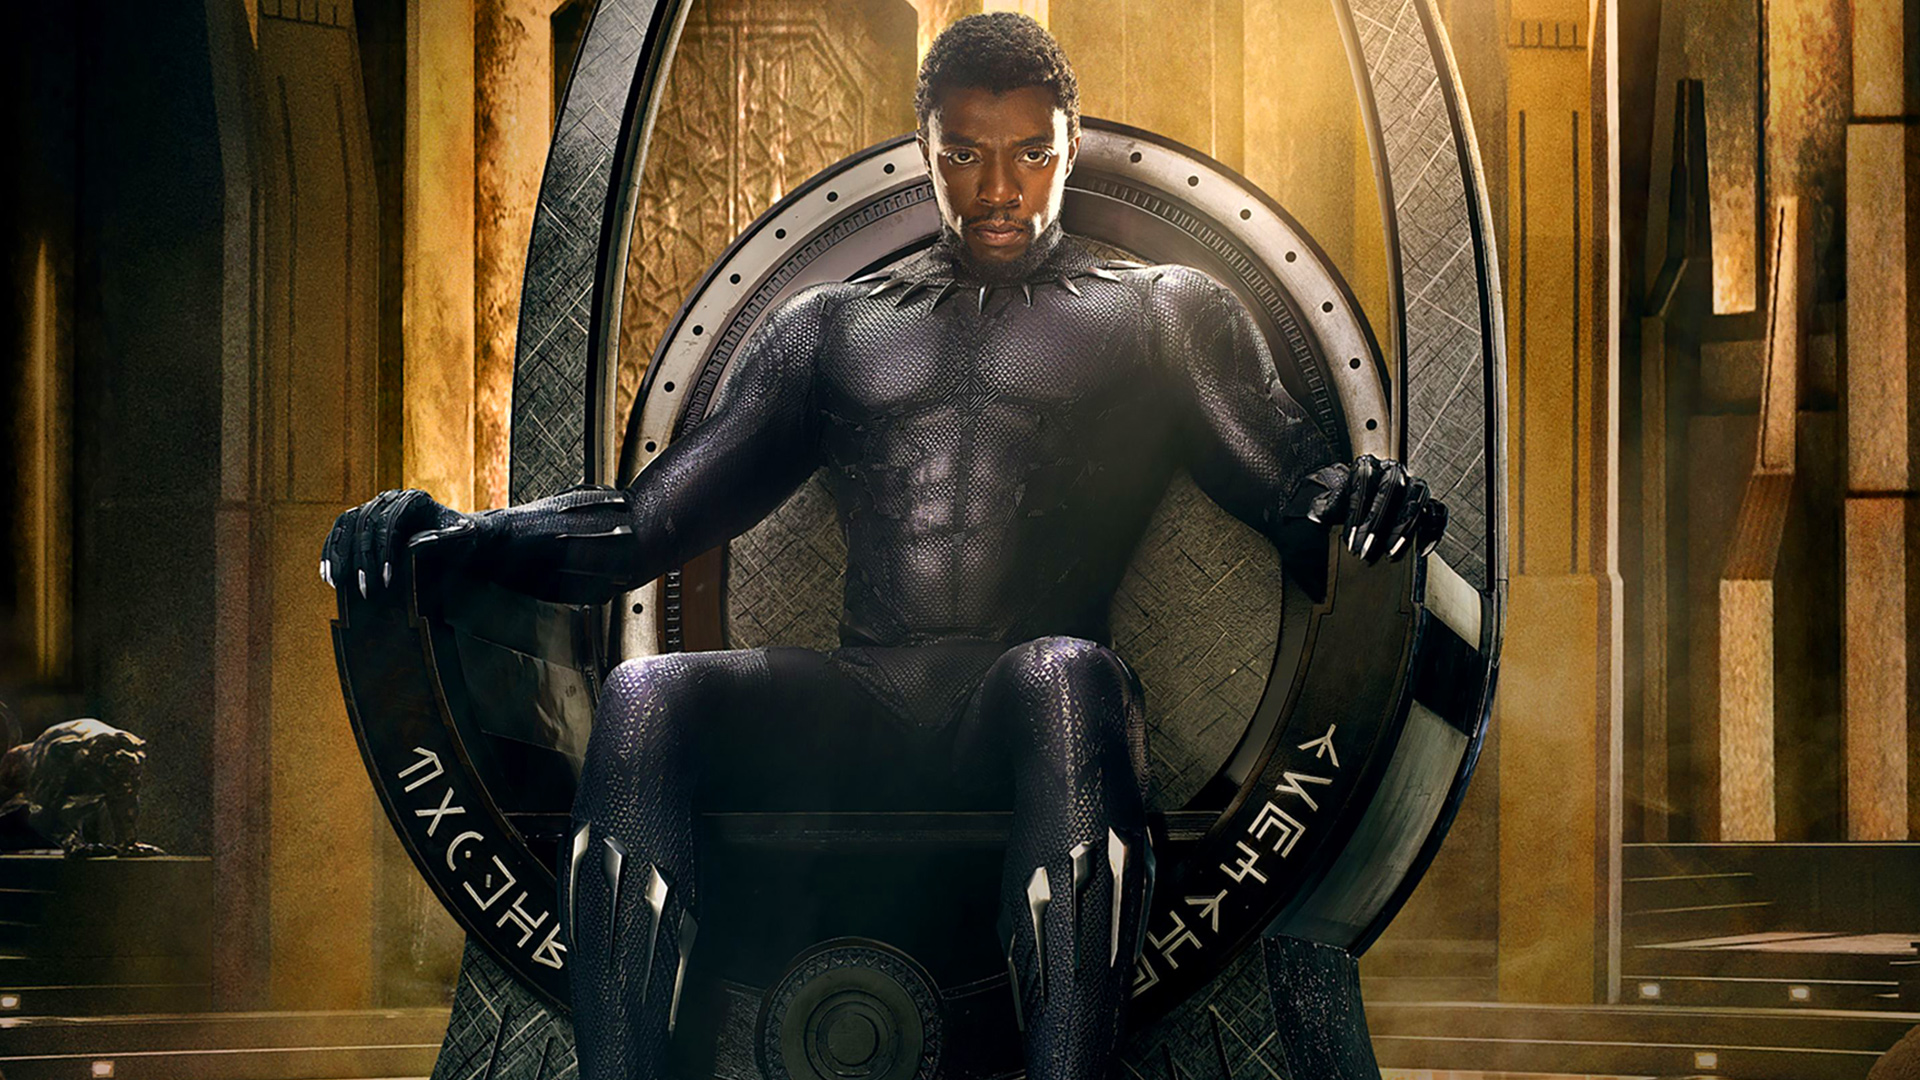 Black Panther: Marvel's New King, Blackness, and Why Representation Matters